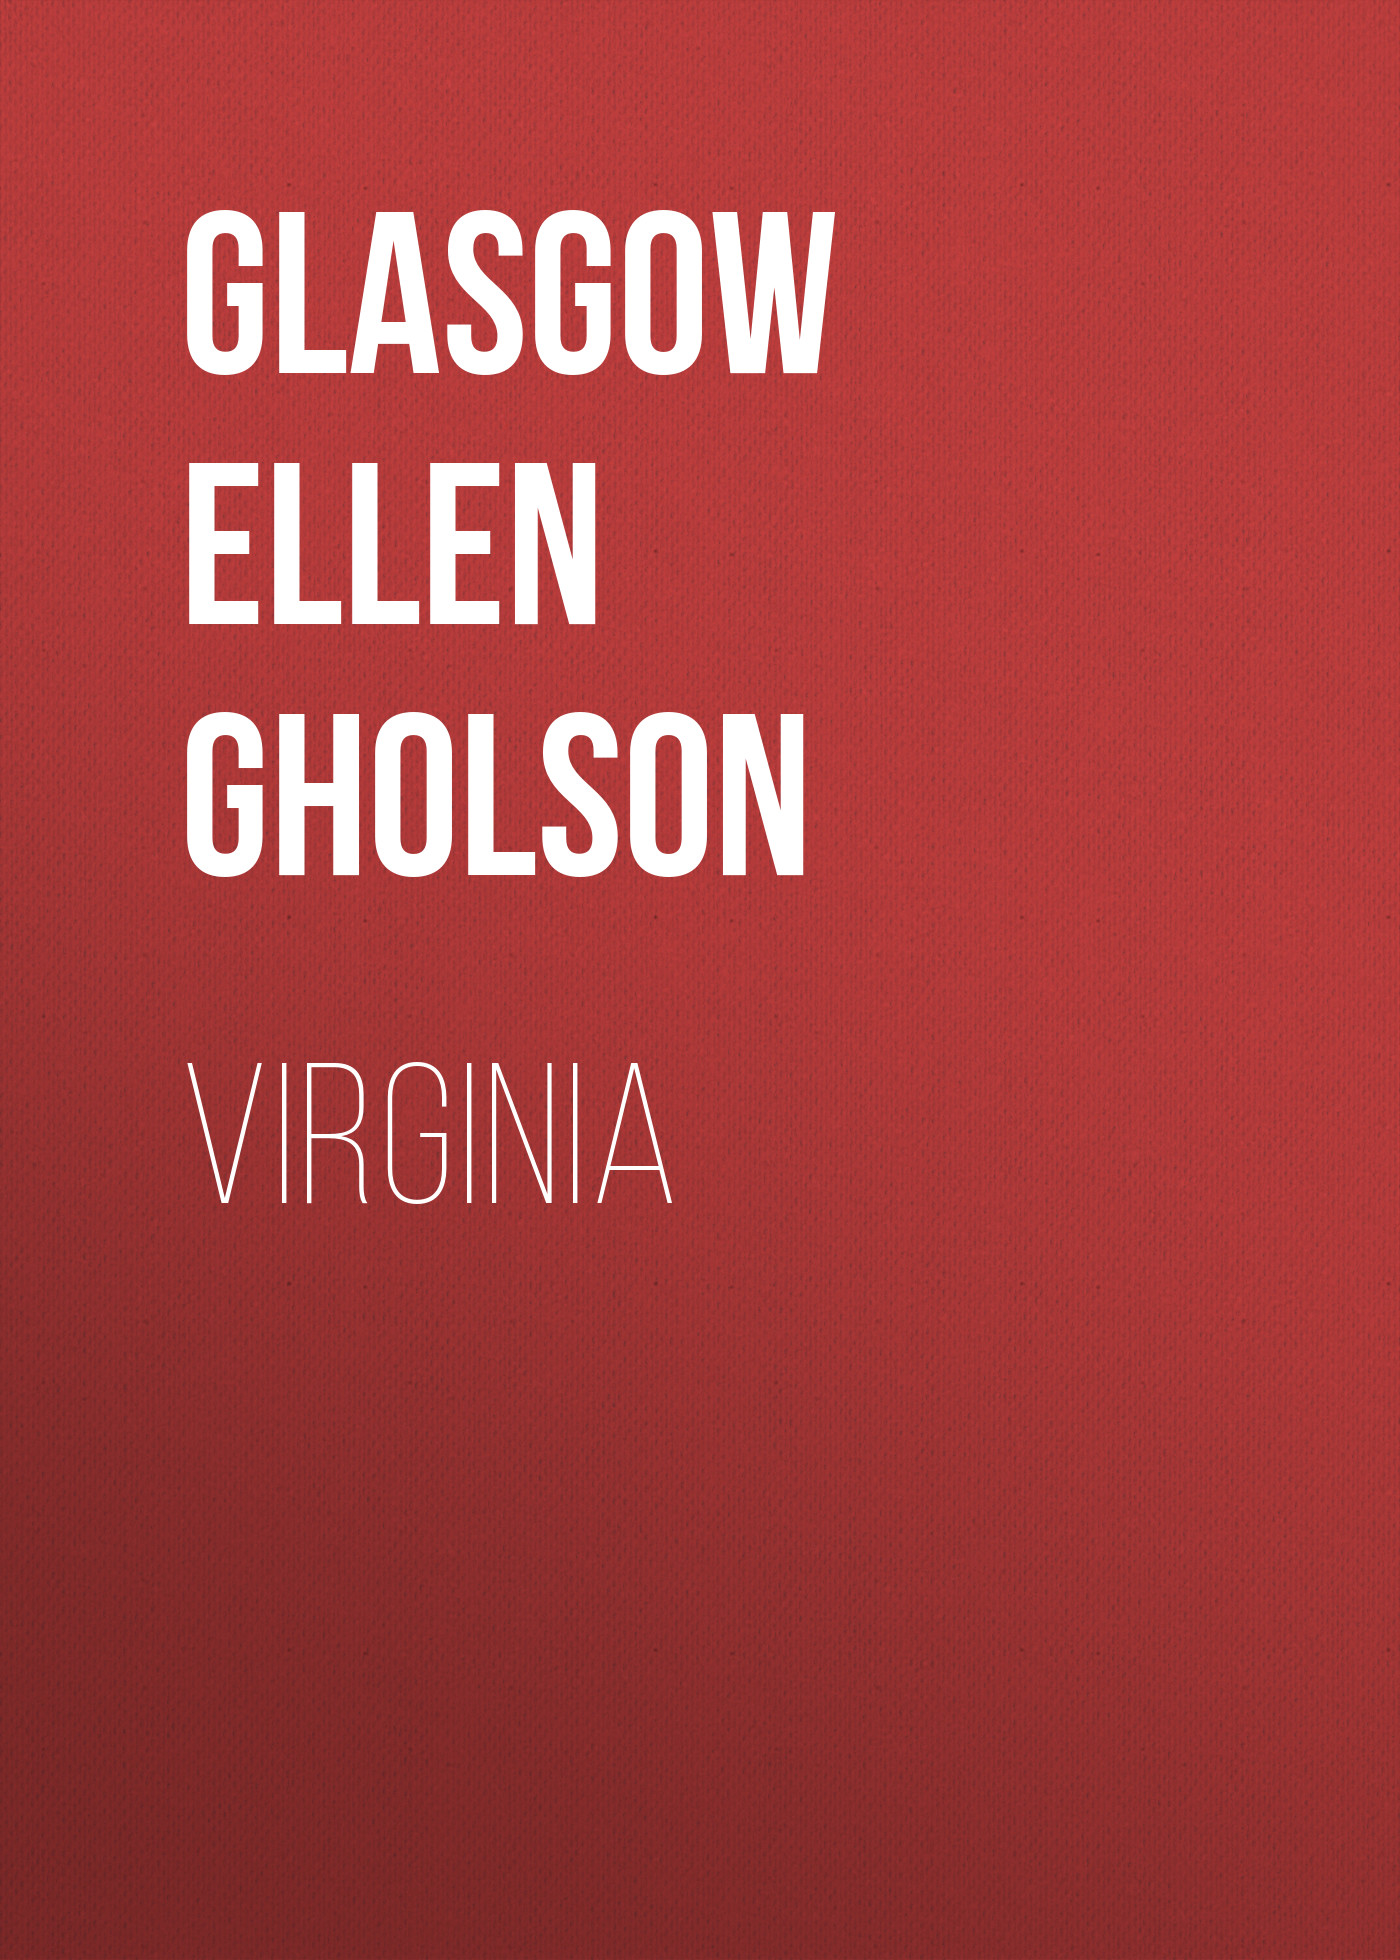 Glasgow Ellen Anderson Gholson Virginia glasgow ellen anderson gholson the romance of a plain man